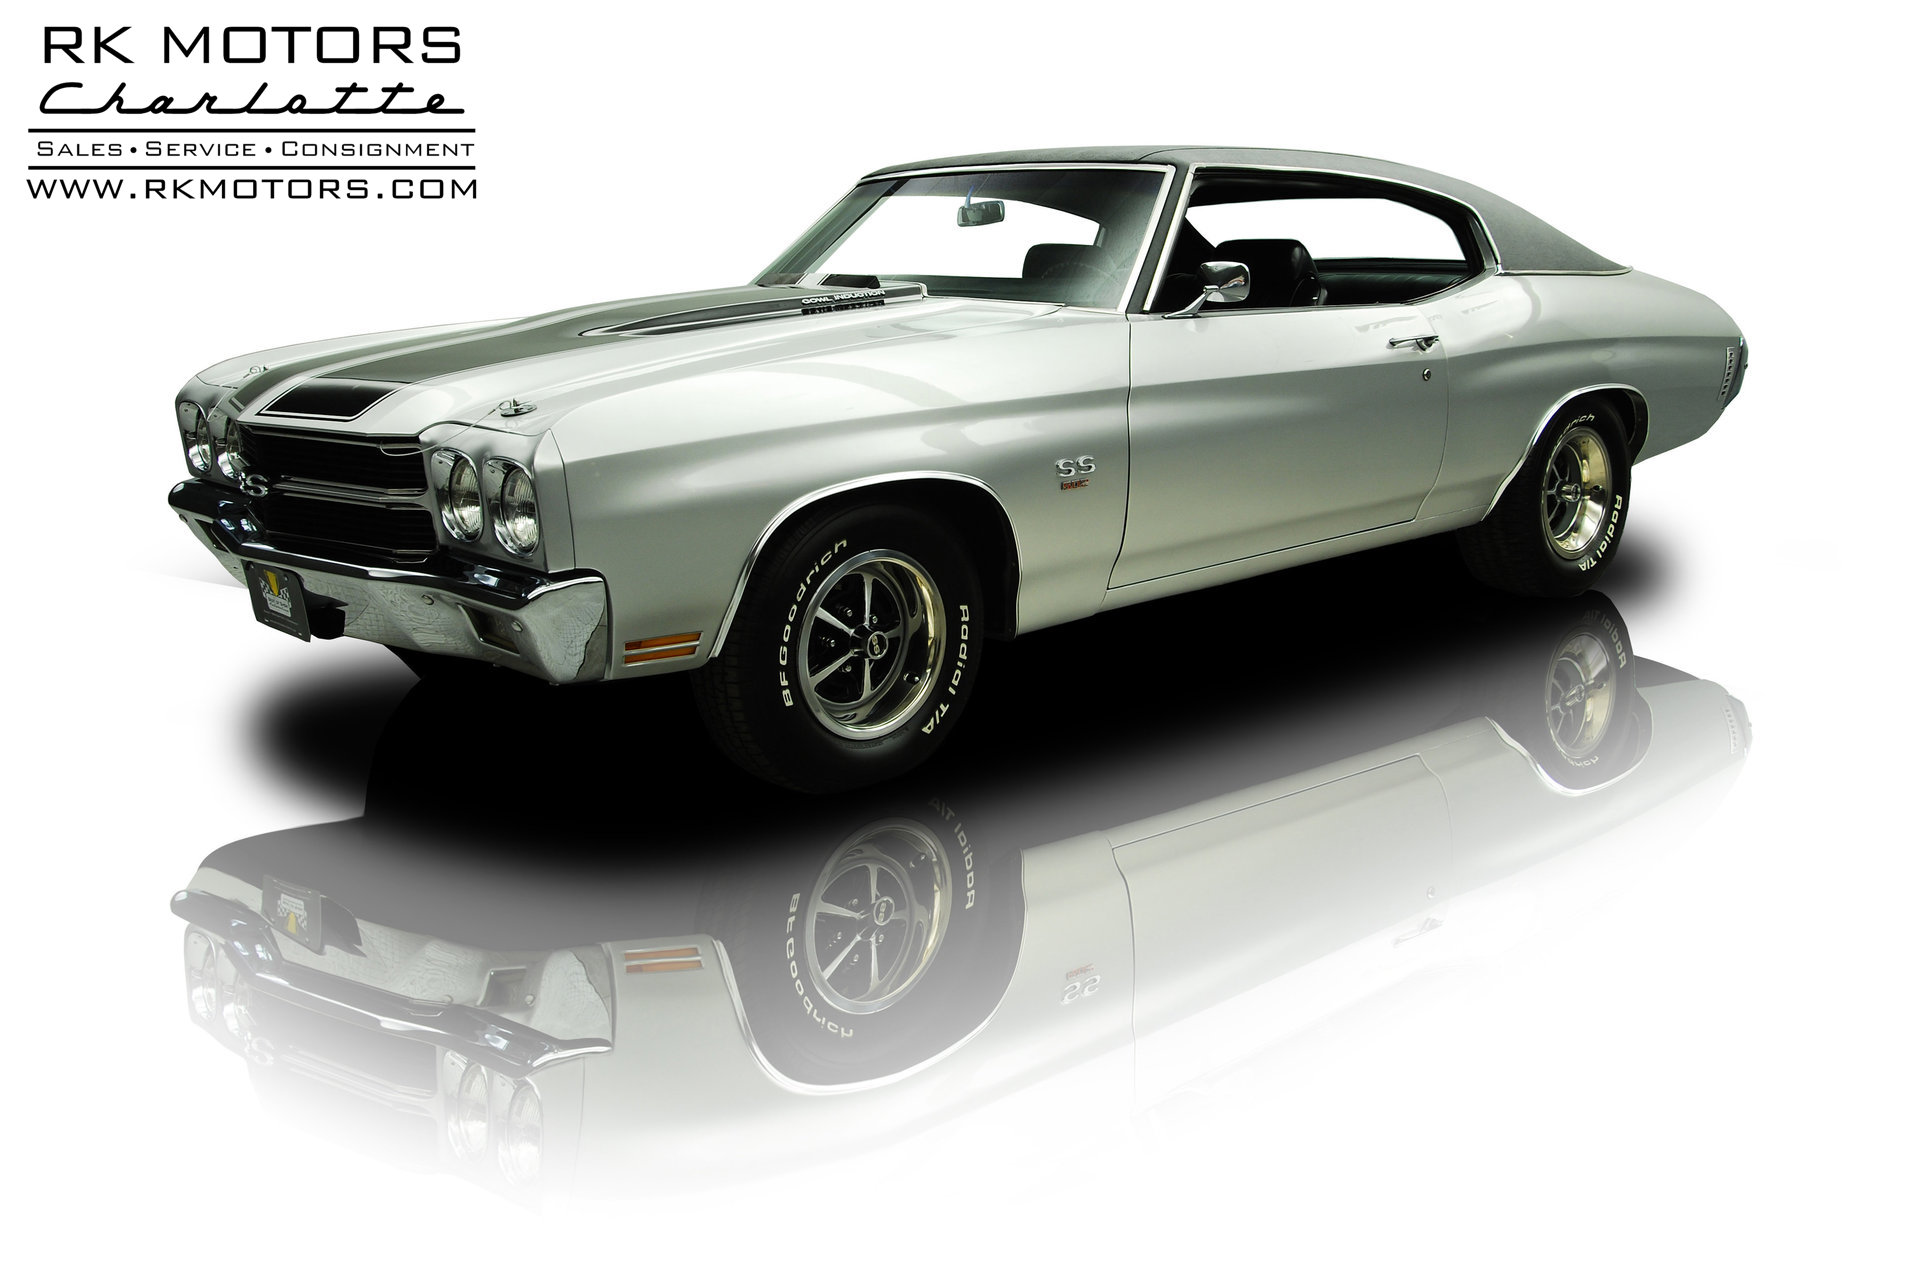 132574 1970 Chevrolet Chevelle | RK Motors Classic and Performance ...